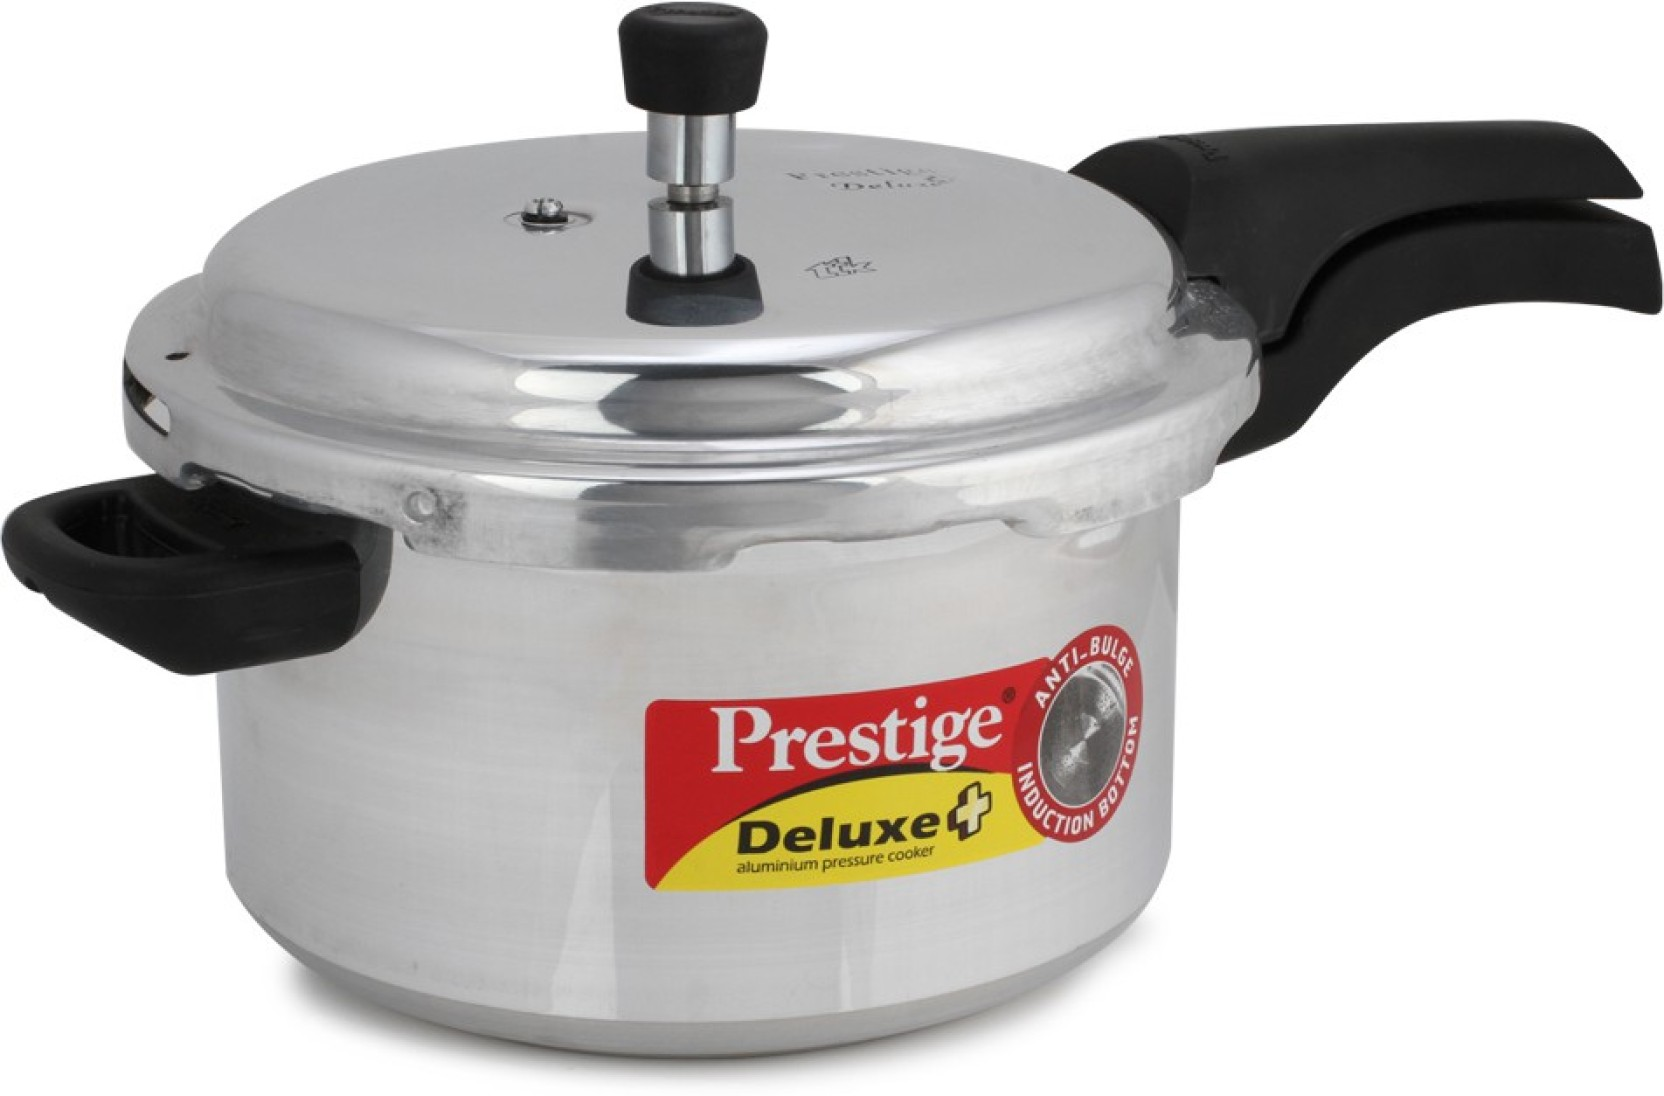 Prestige Deluxe Plus 5 L Pressure Cooker With Induction Bottom Price Buy Circuit Boardelectric Cookerinduction Add To Cart Now